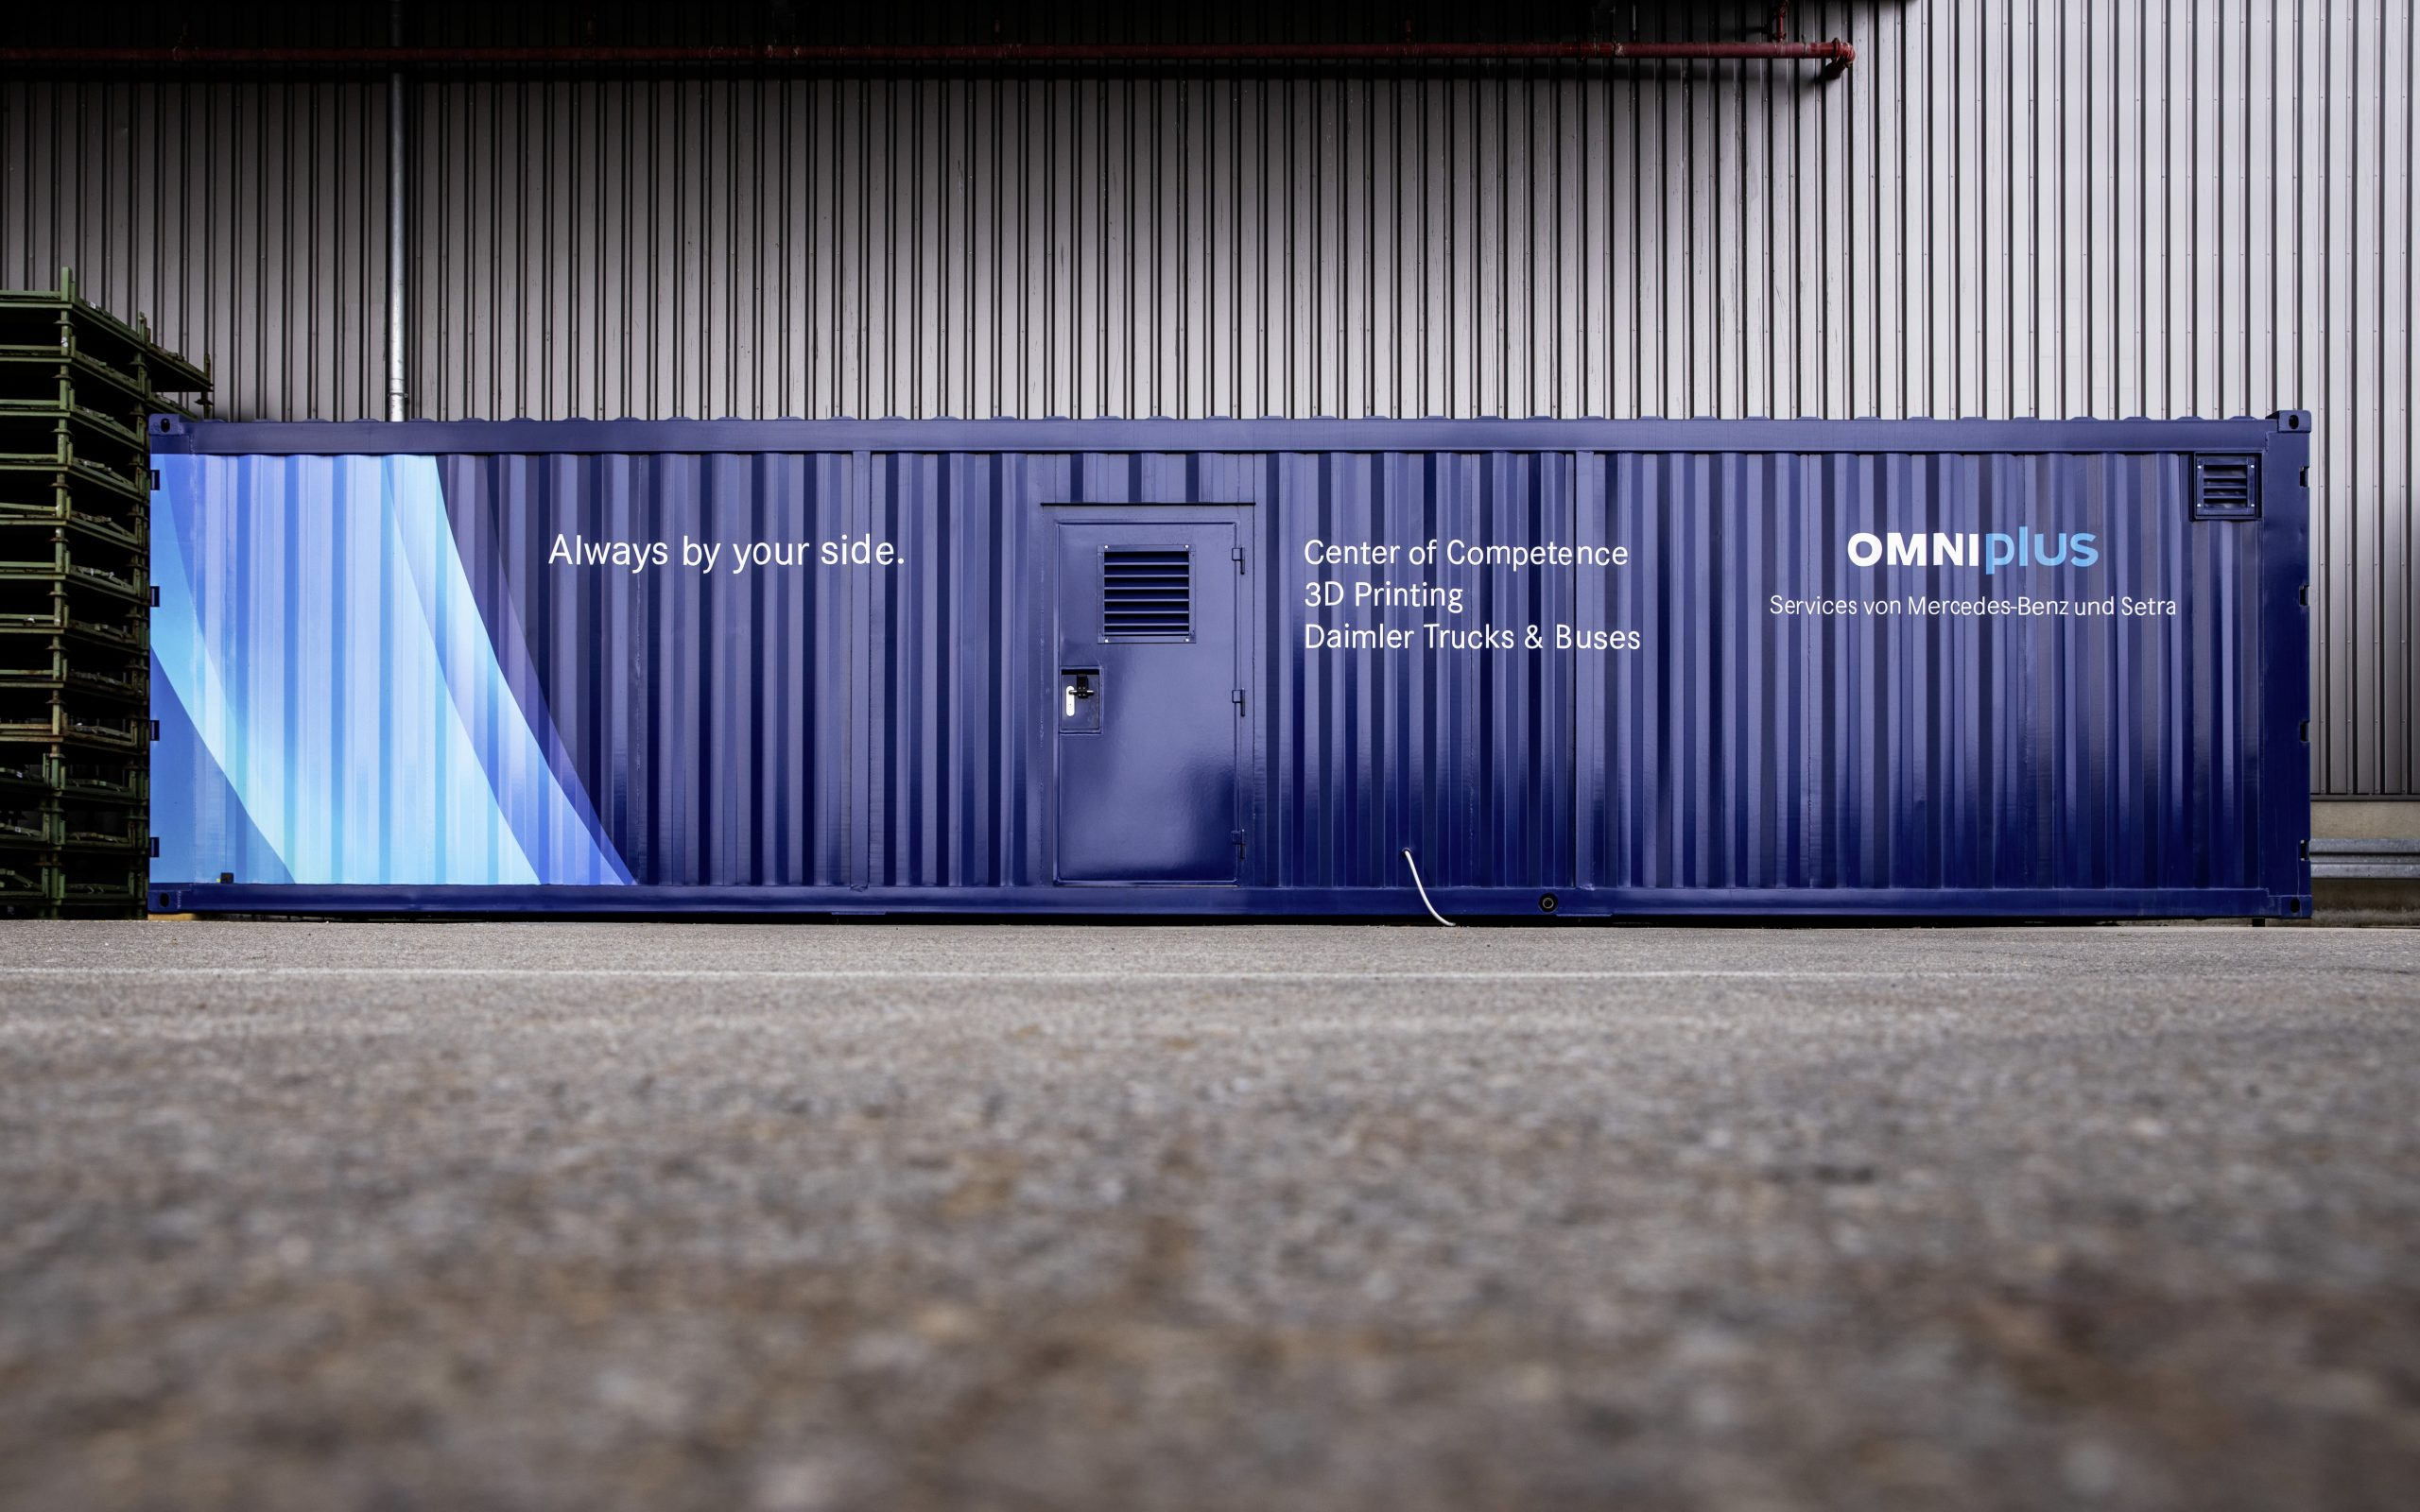 Daimler Buses and its service brand Omniplus have created a mobile printing centre for the decentralised production of 3D printed spare parts in order to be able to provide bus customers with spare parts more quickly. Photo via Daimler.